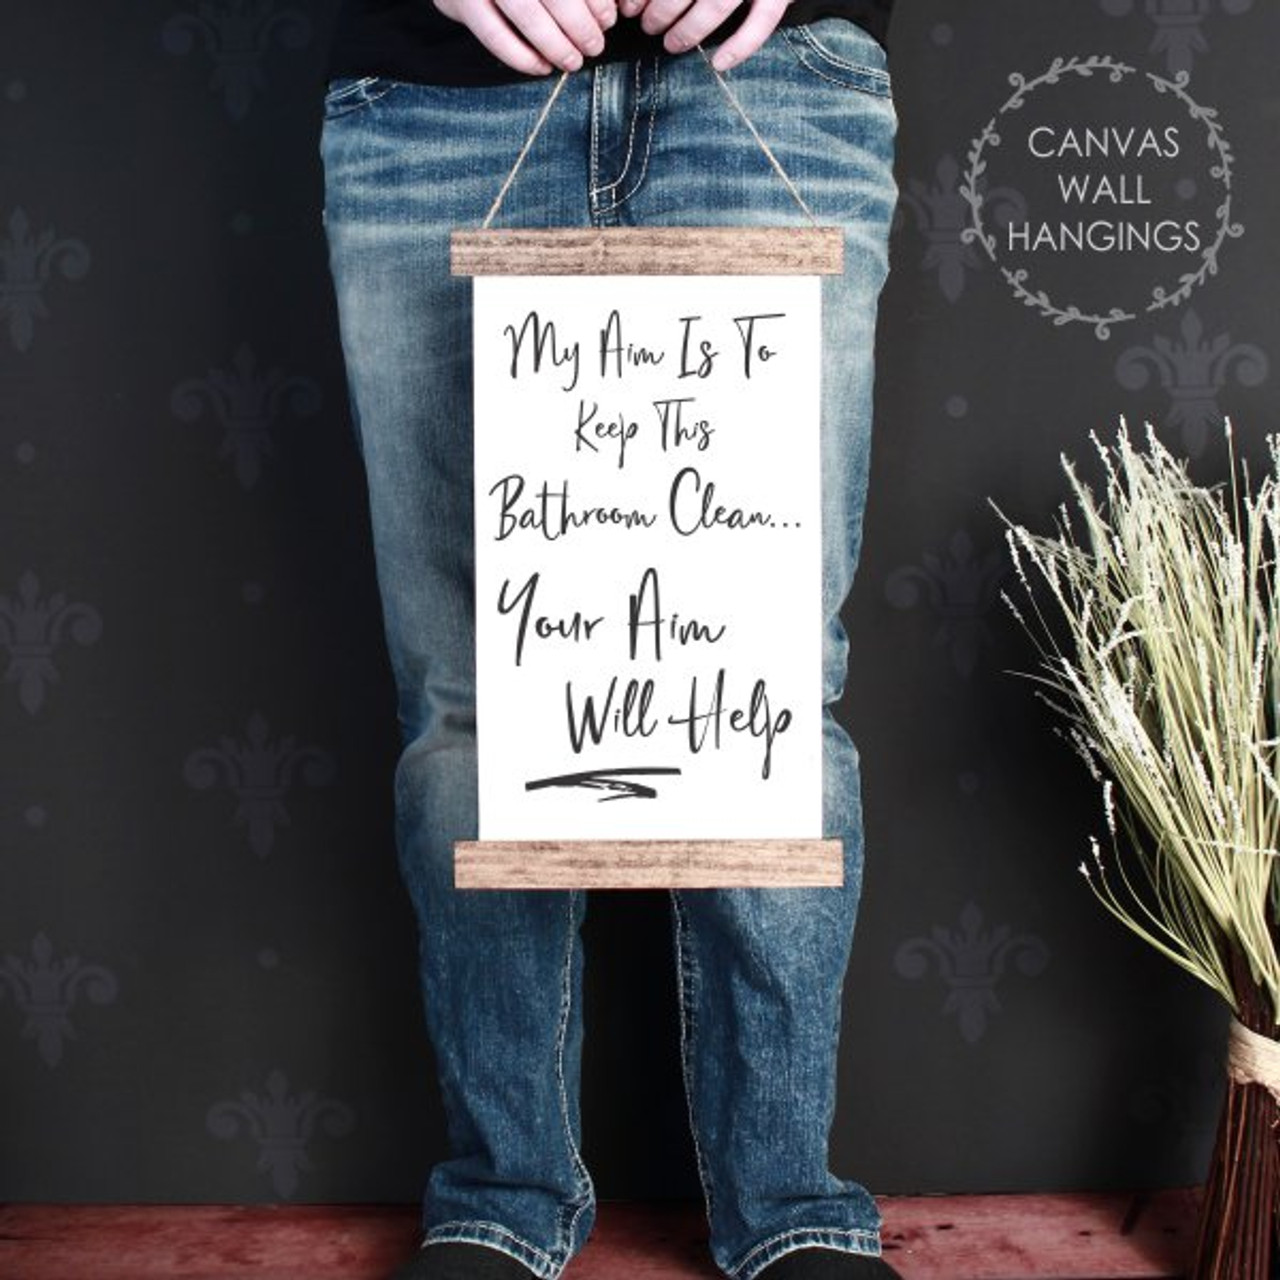 Your Aim Quote Funny Boys Bathroom Decor Wall Hanging Wood Hanging Canvas Sign